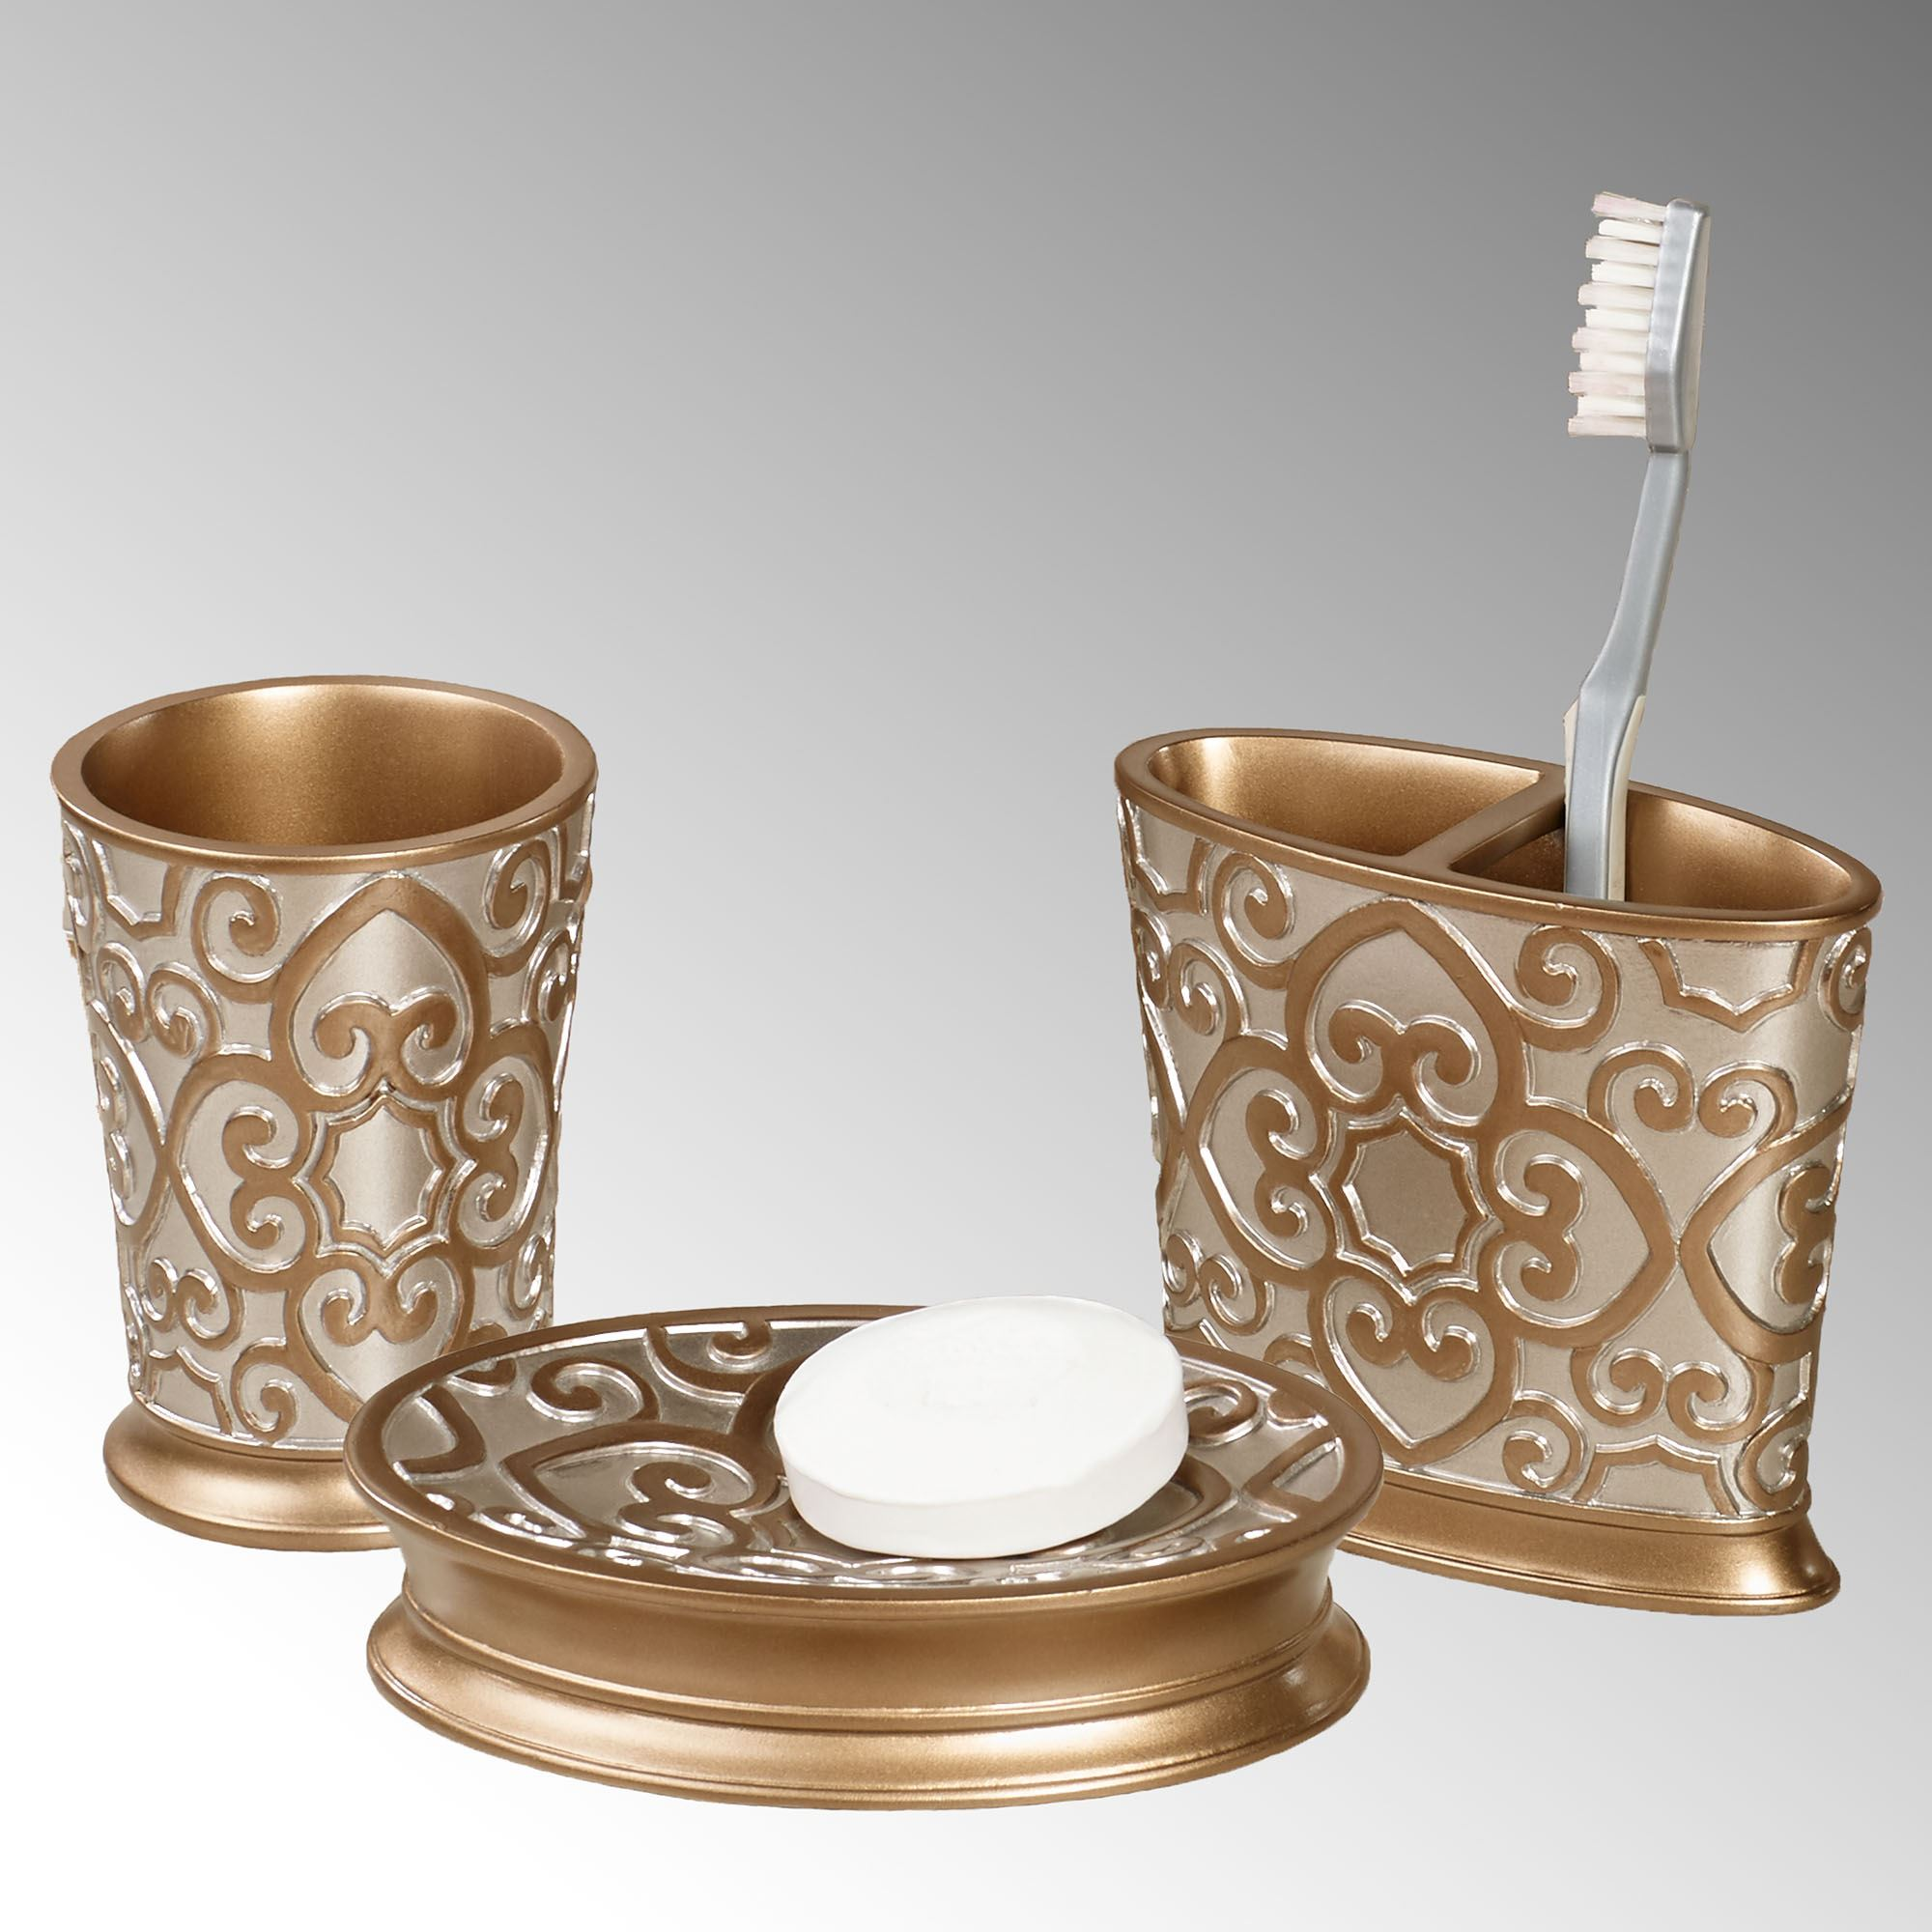 Allure silver and gold bath accessories for Gold bathroom accessories sets